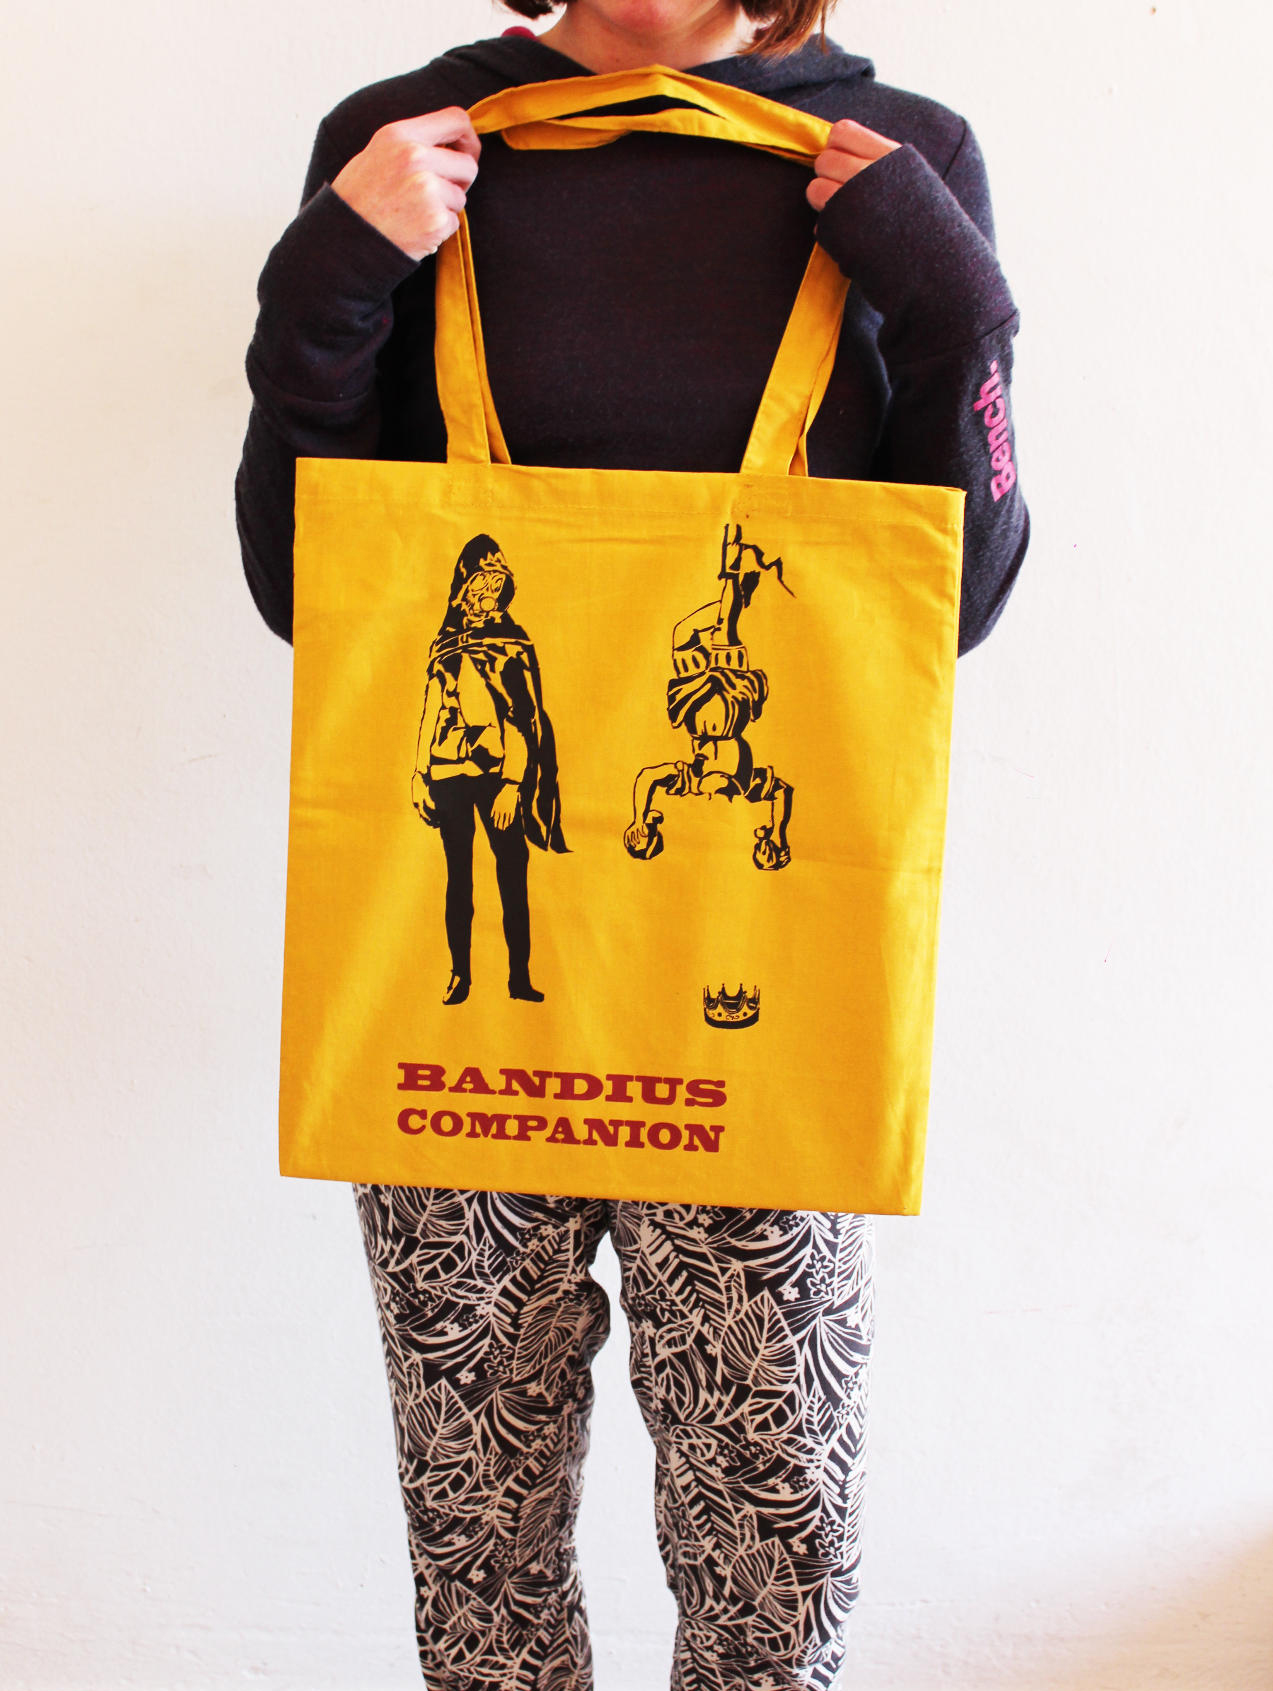 Bandius Companion TOTE BAG + MUSIC DOWNLOAD